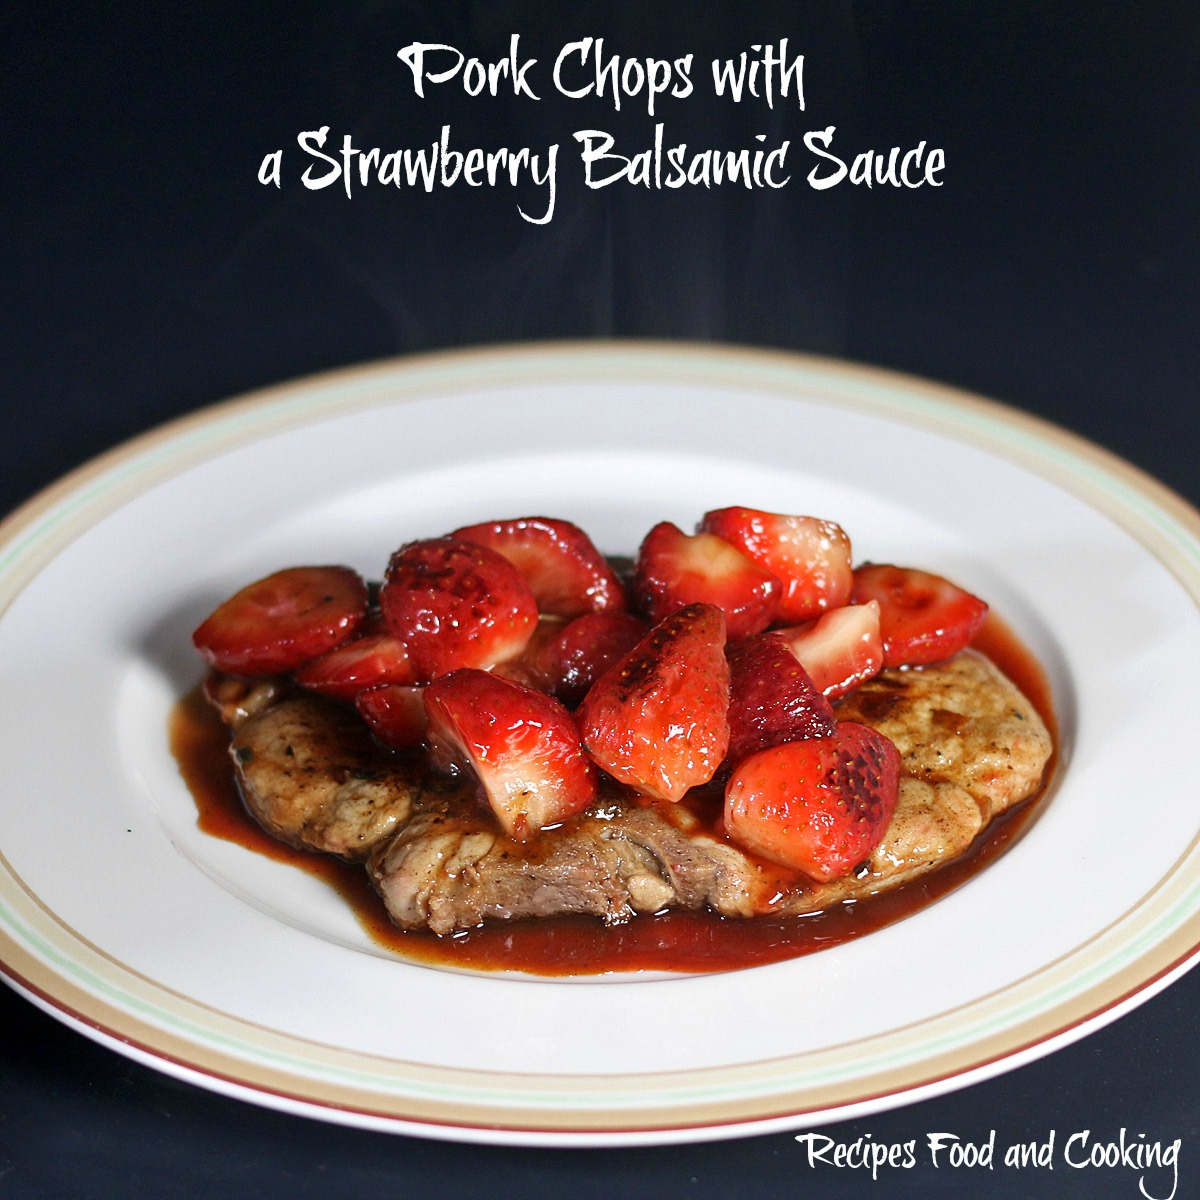 Pork Chops with a Strawberry Balsamic Sauce